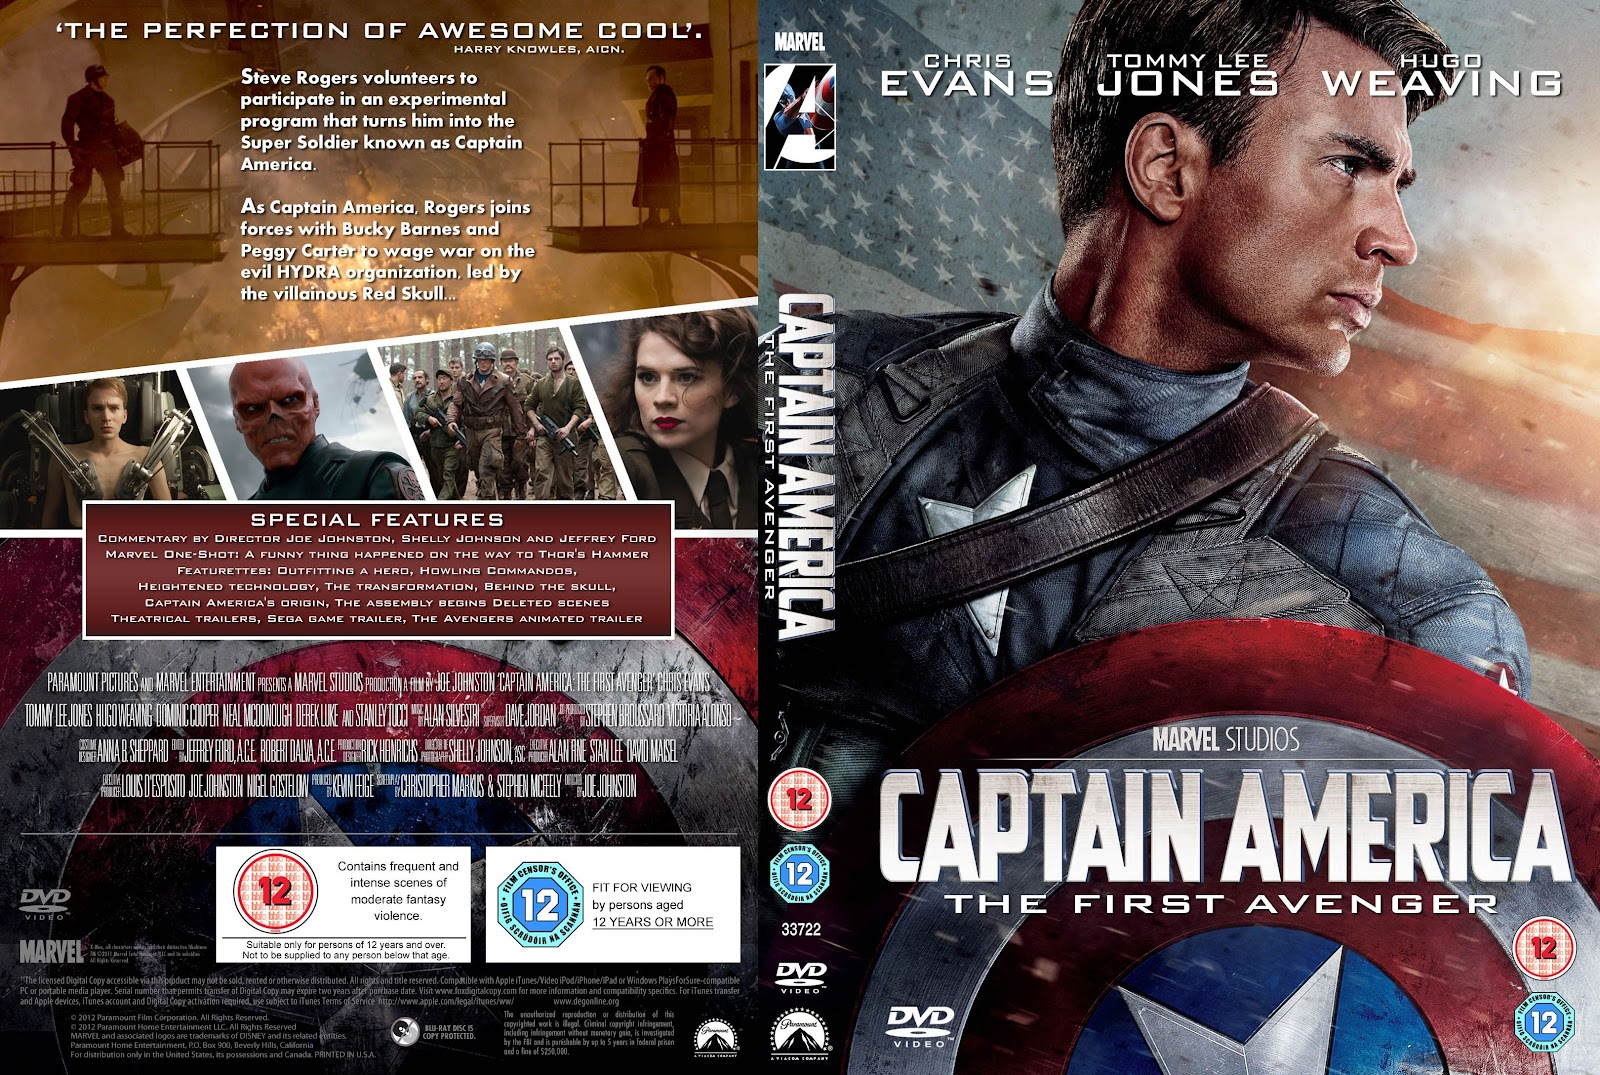 Capa DVD Captain America The First Avenger